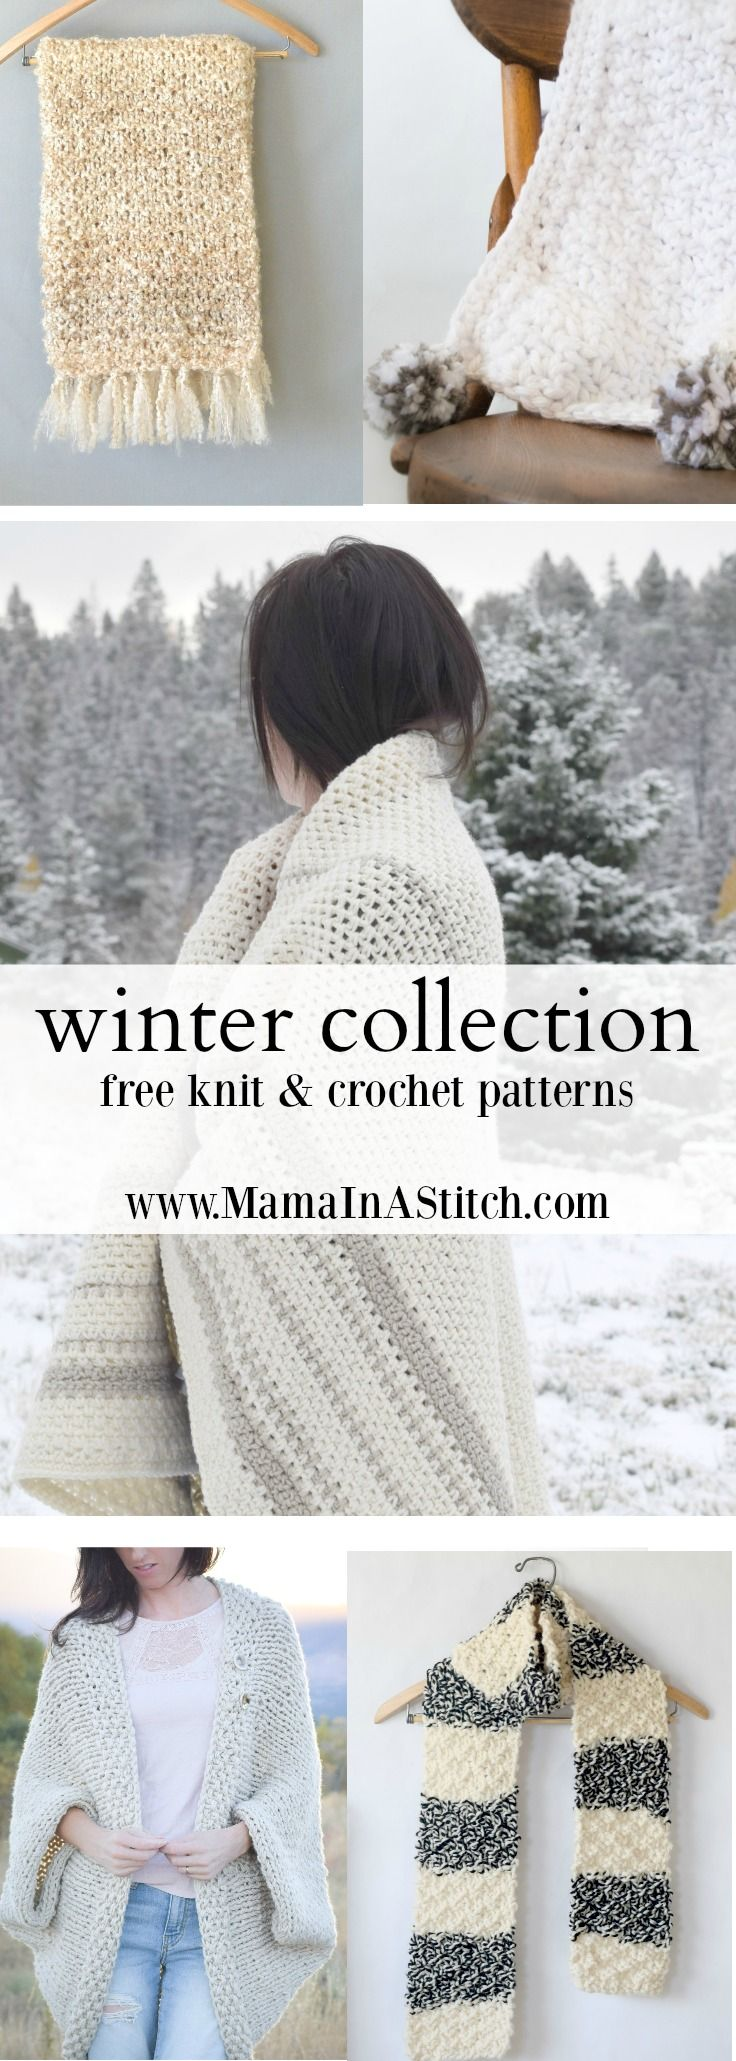 Free, easy knit and crochet patterns from the Full Winter Collection ...